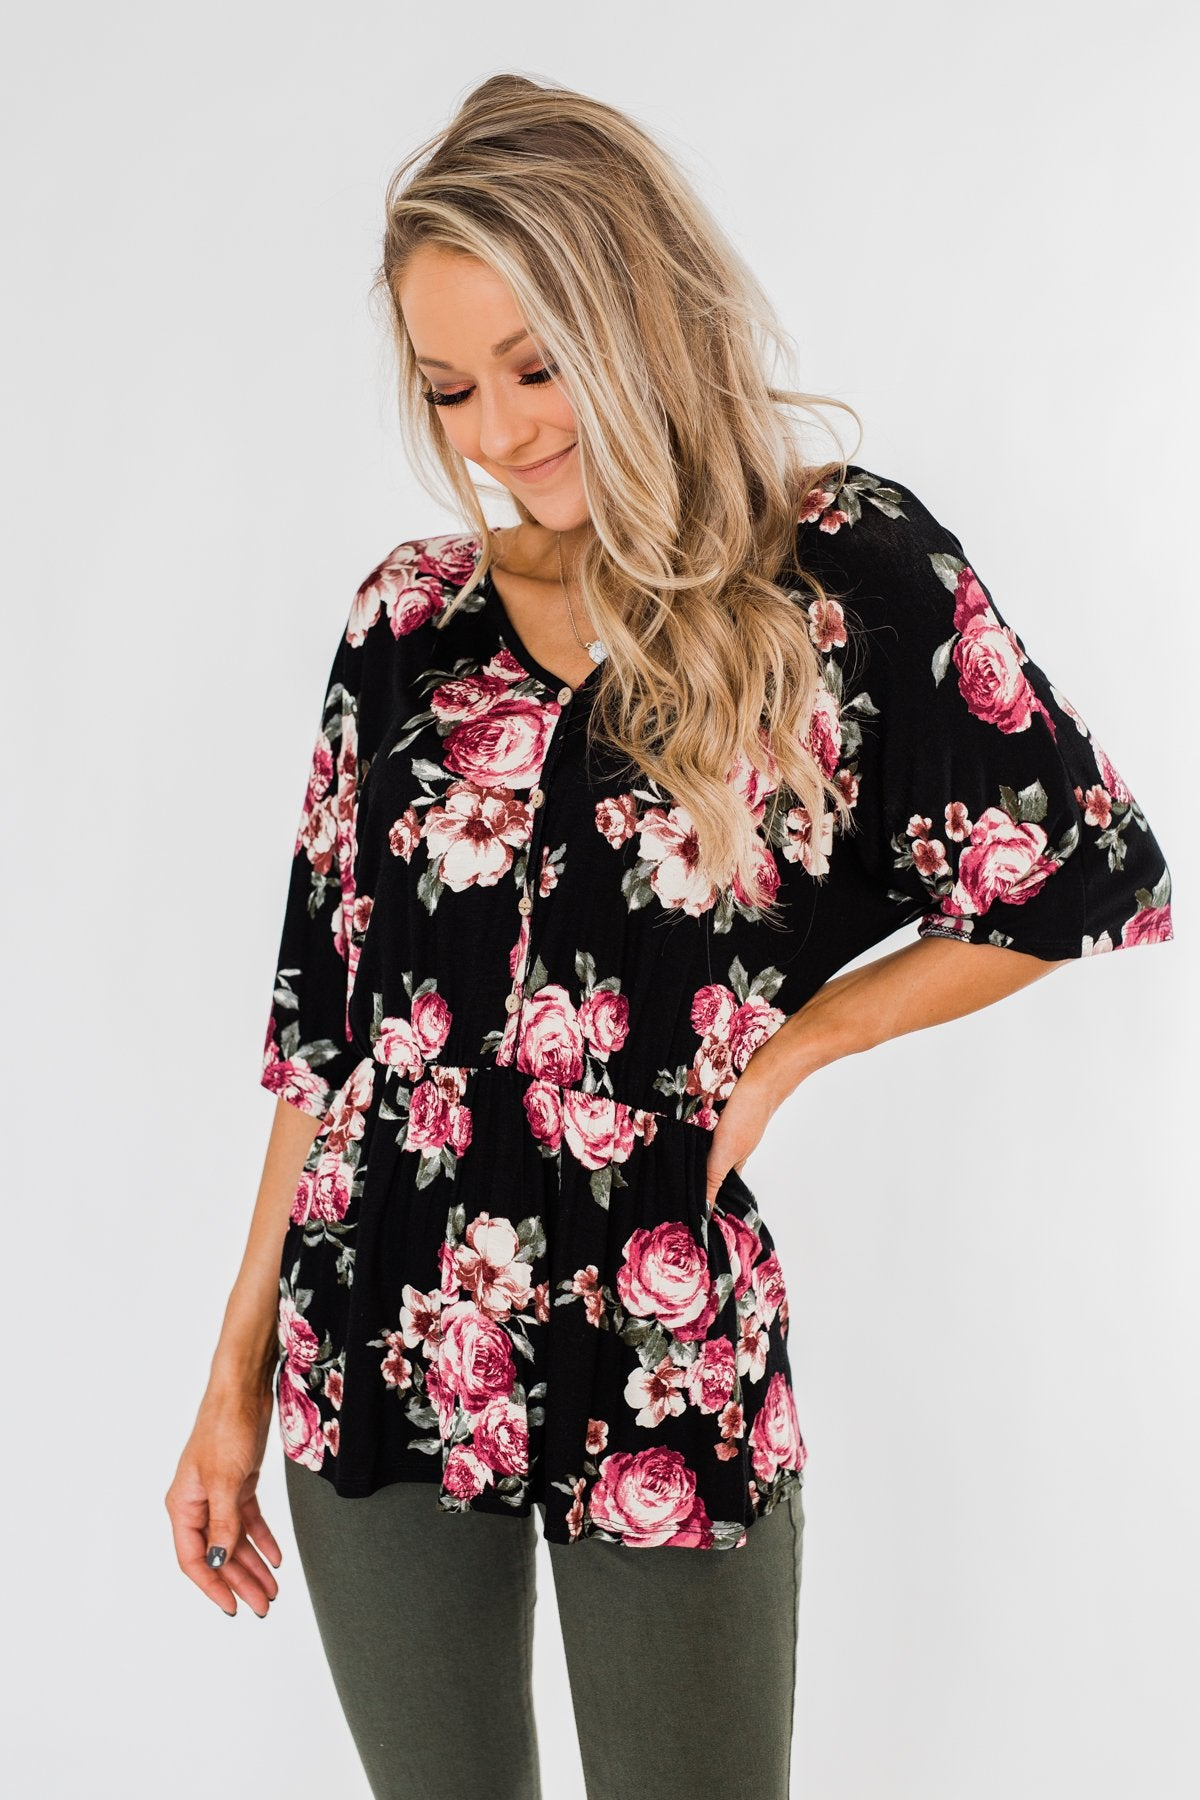 The Way To My Heart Floral Button Top- Black